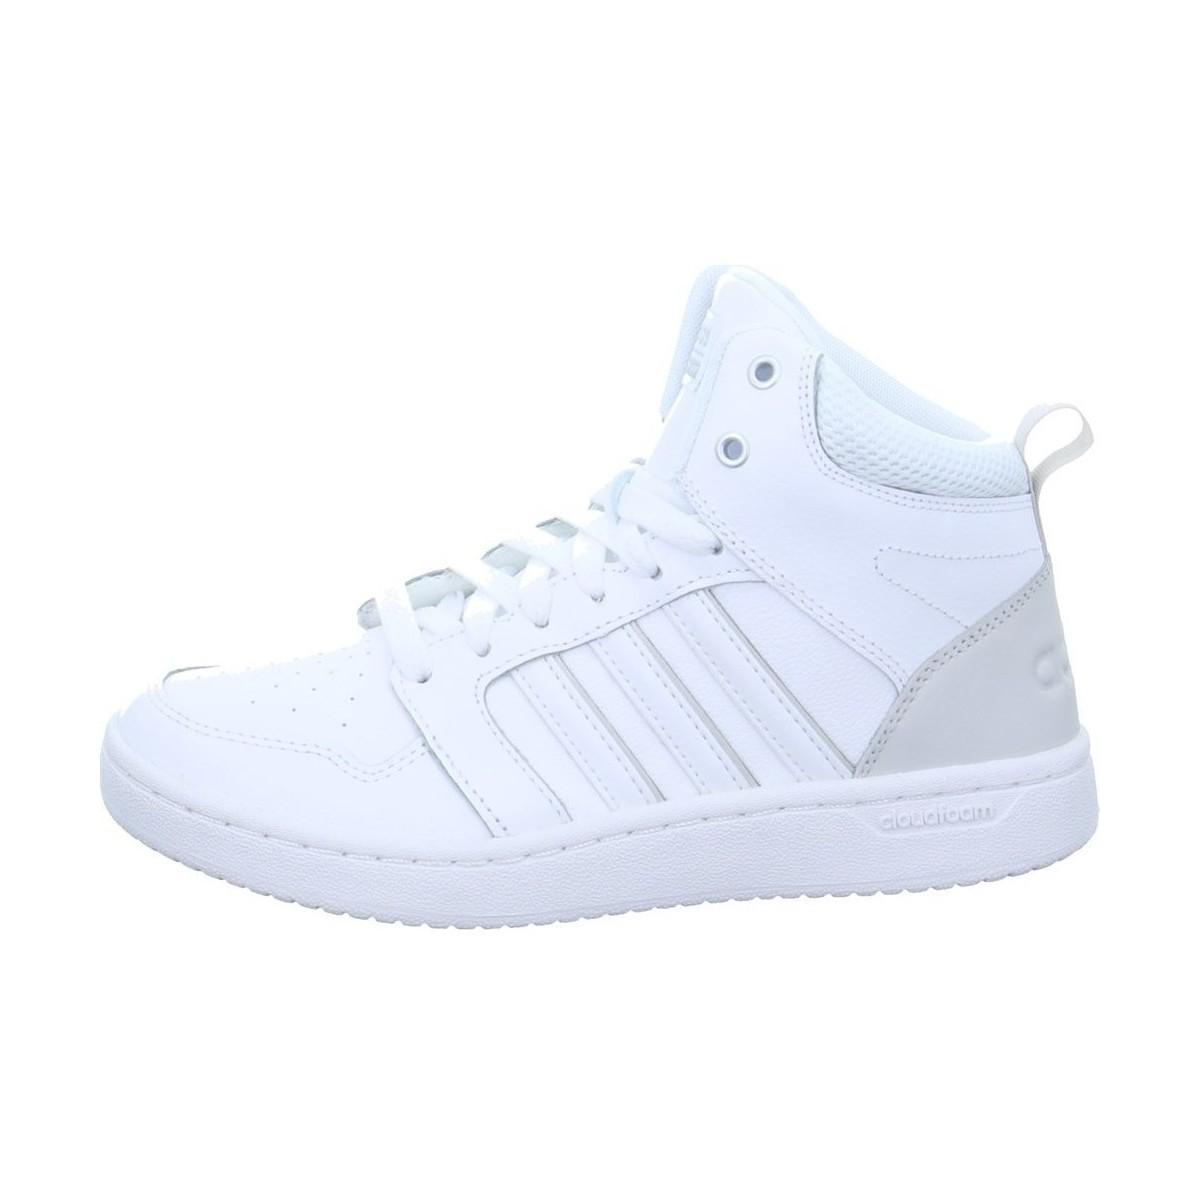 check out 059c6 797b1 Adidas Cf Superhoops Mid W Womens Shoes (high-top Trainers)